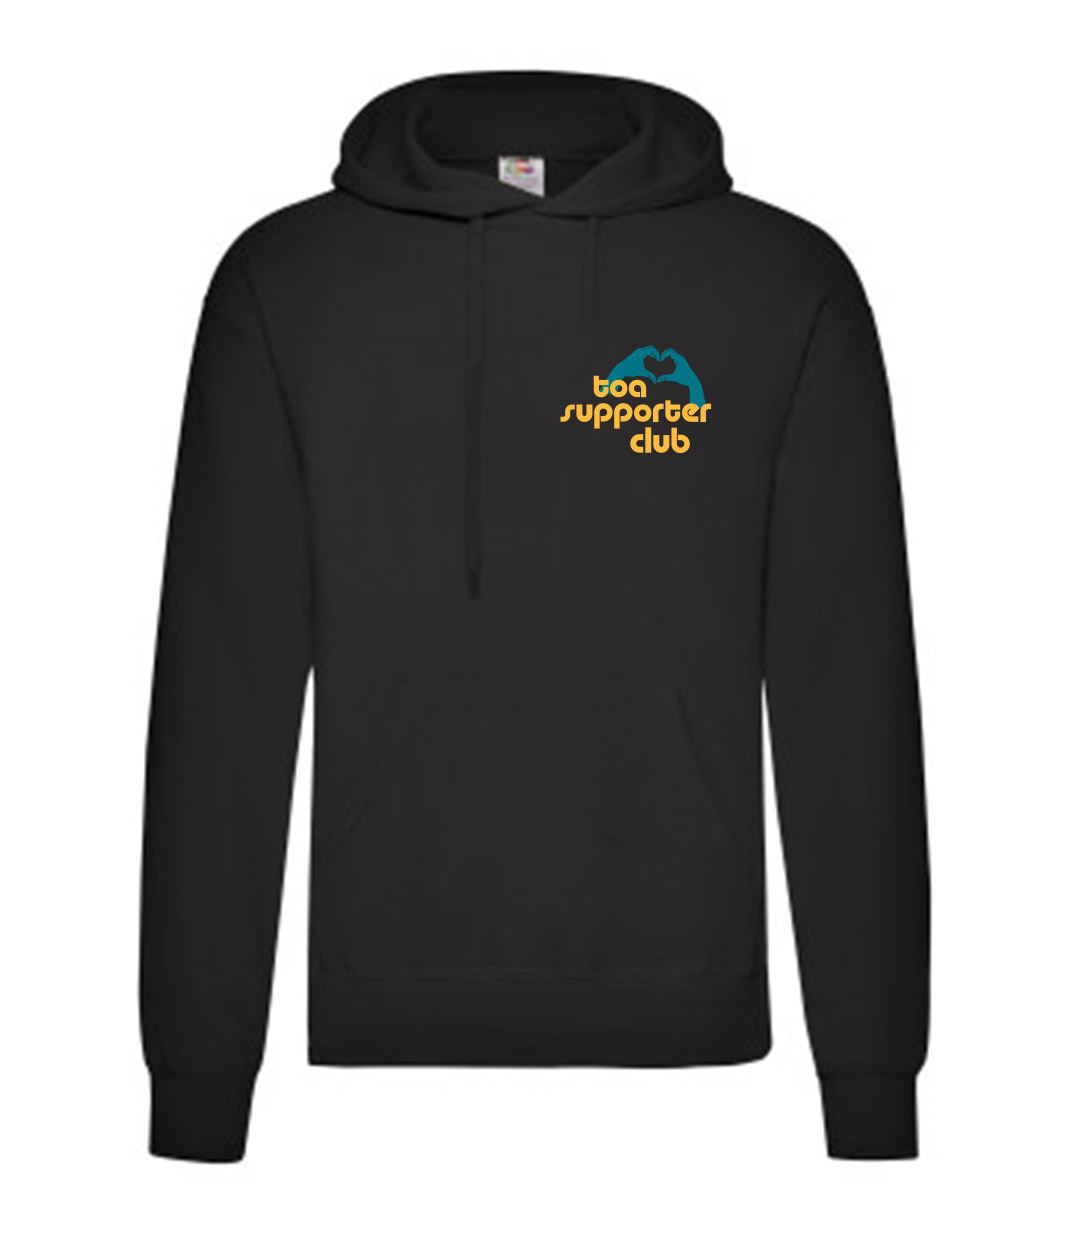 Toa Supporter Club Unisex Hoodie